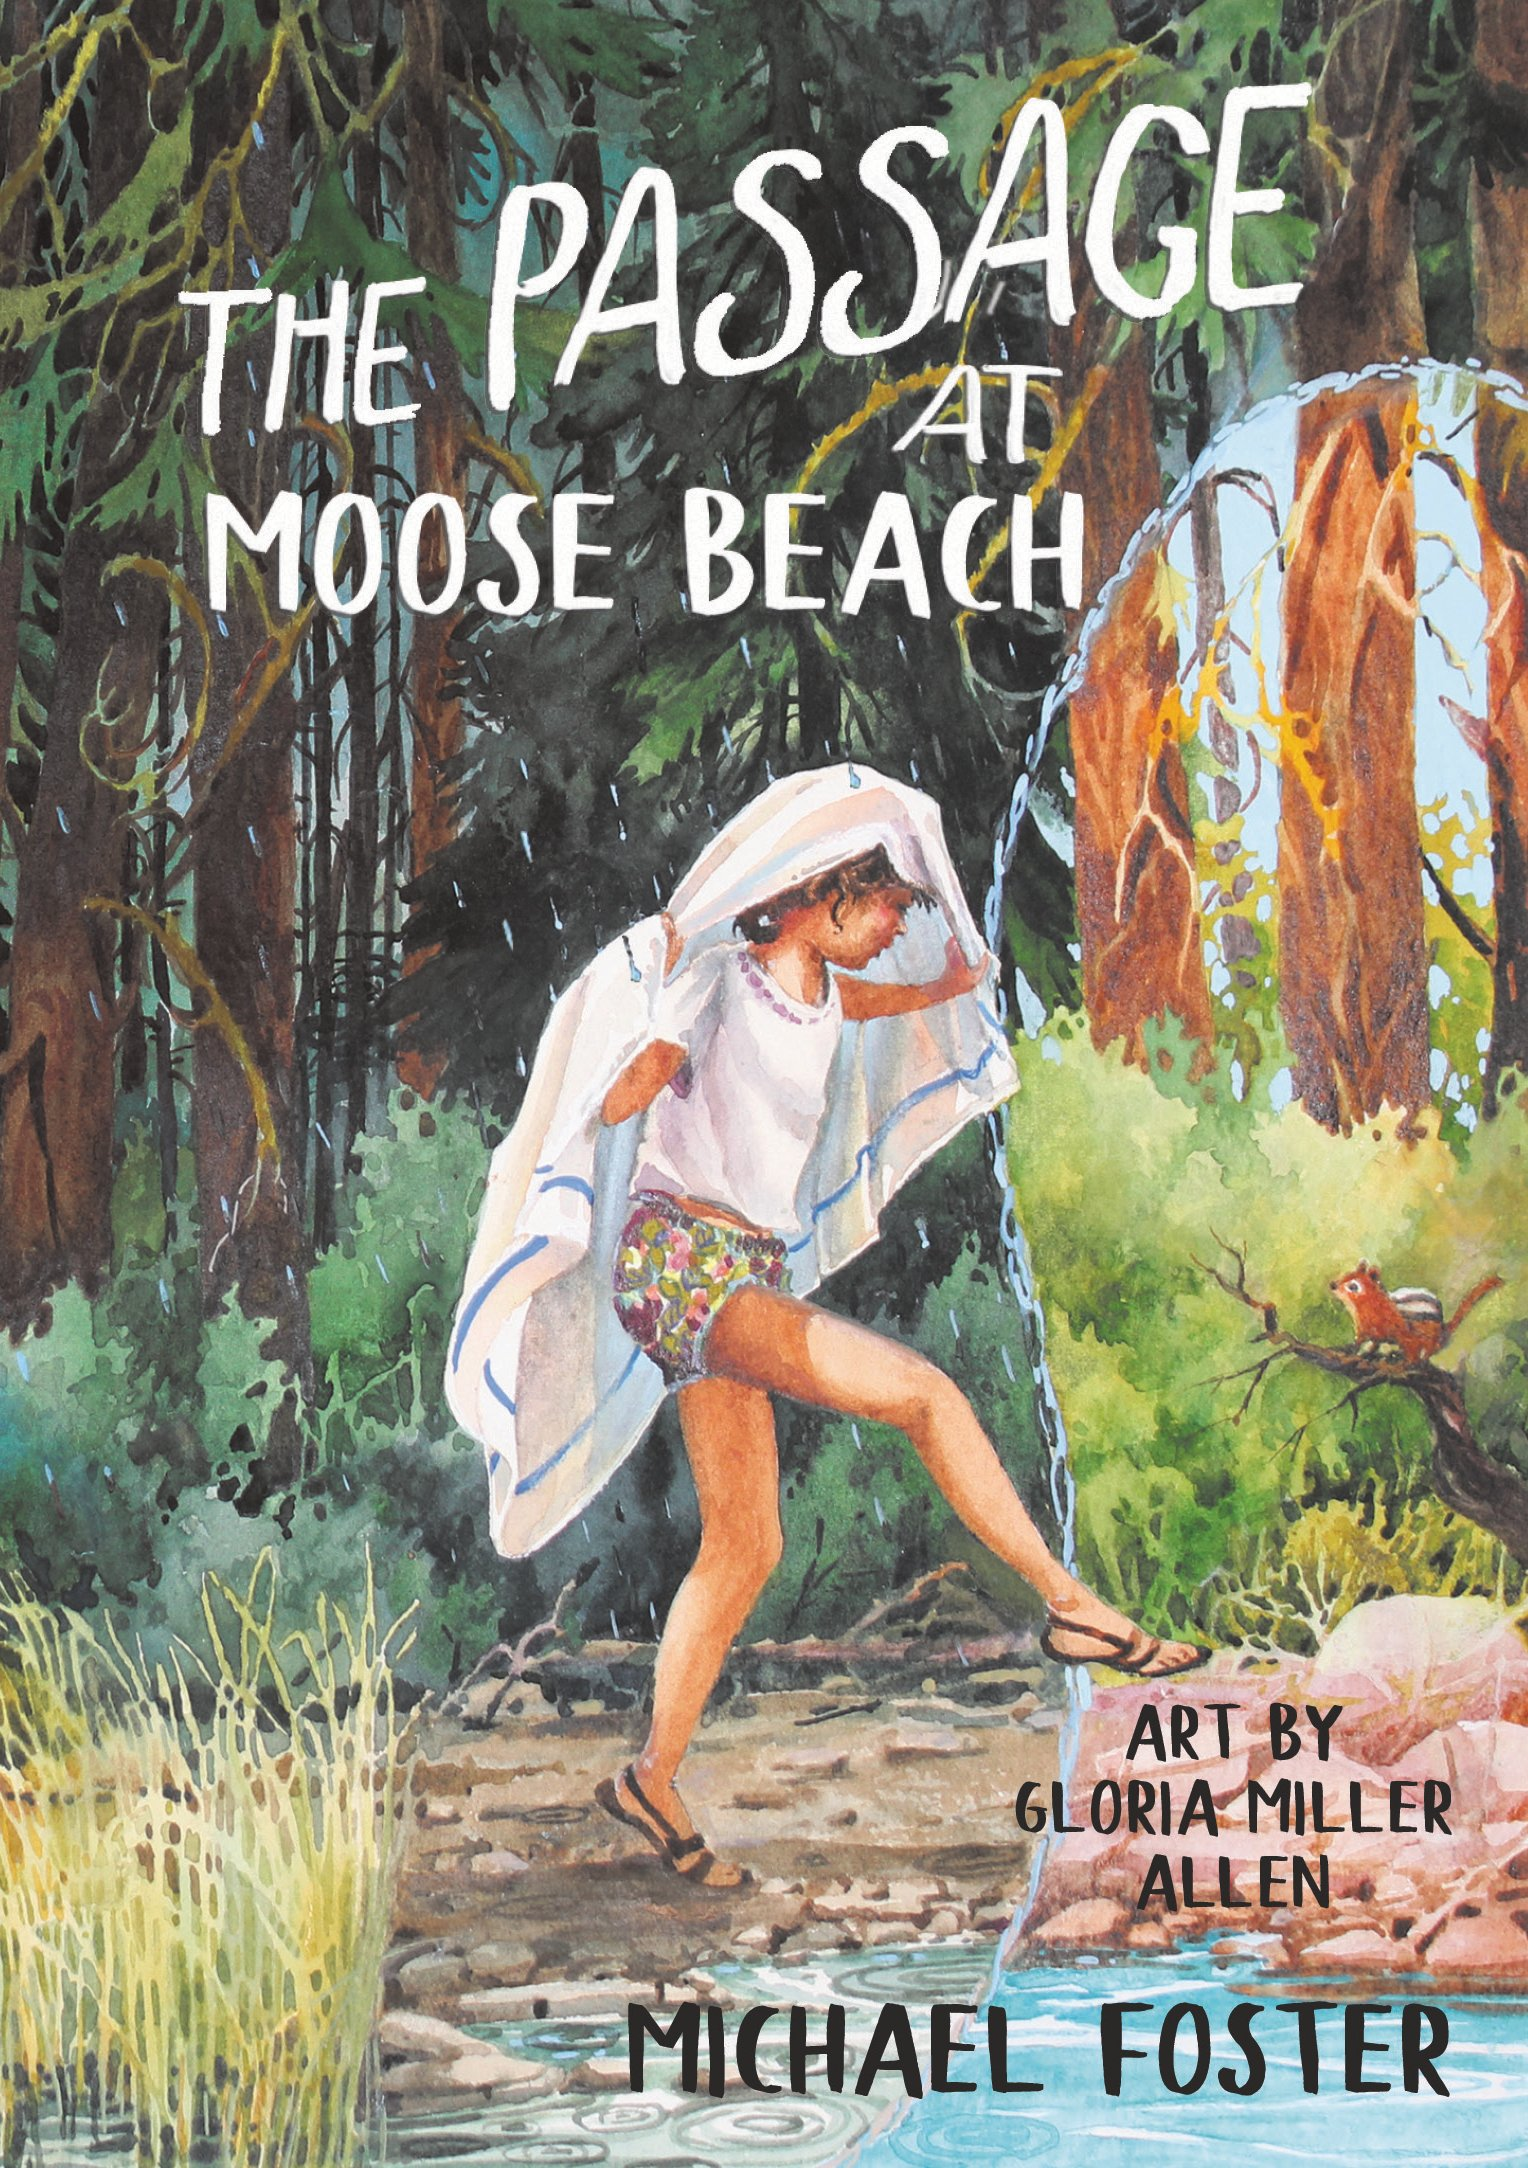 The Passage at Moose Beach (Hardcover)